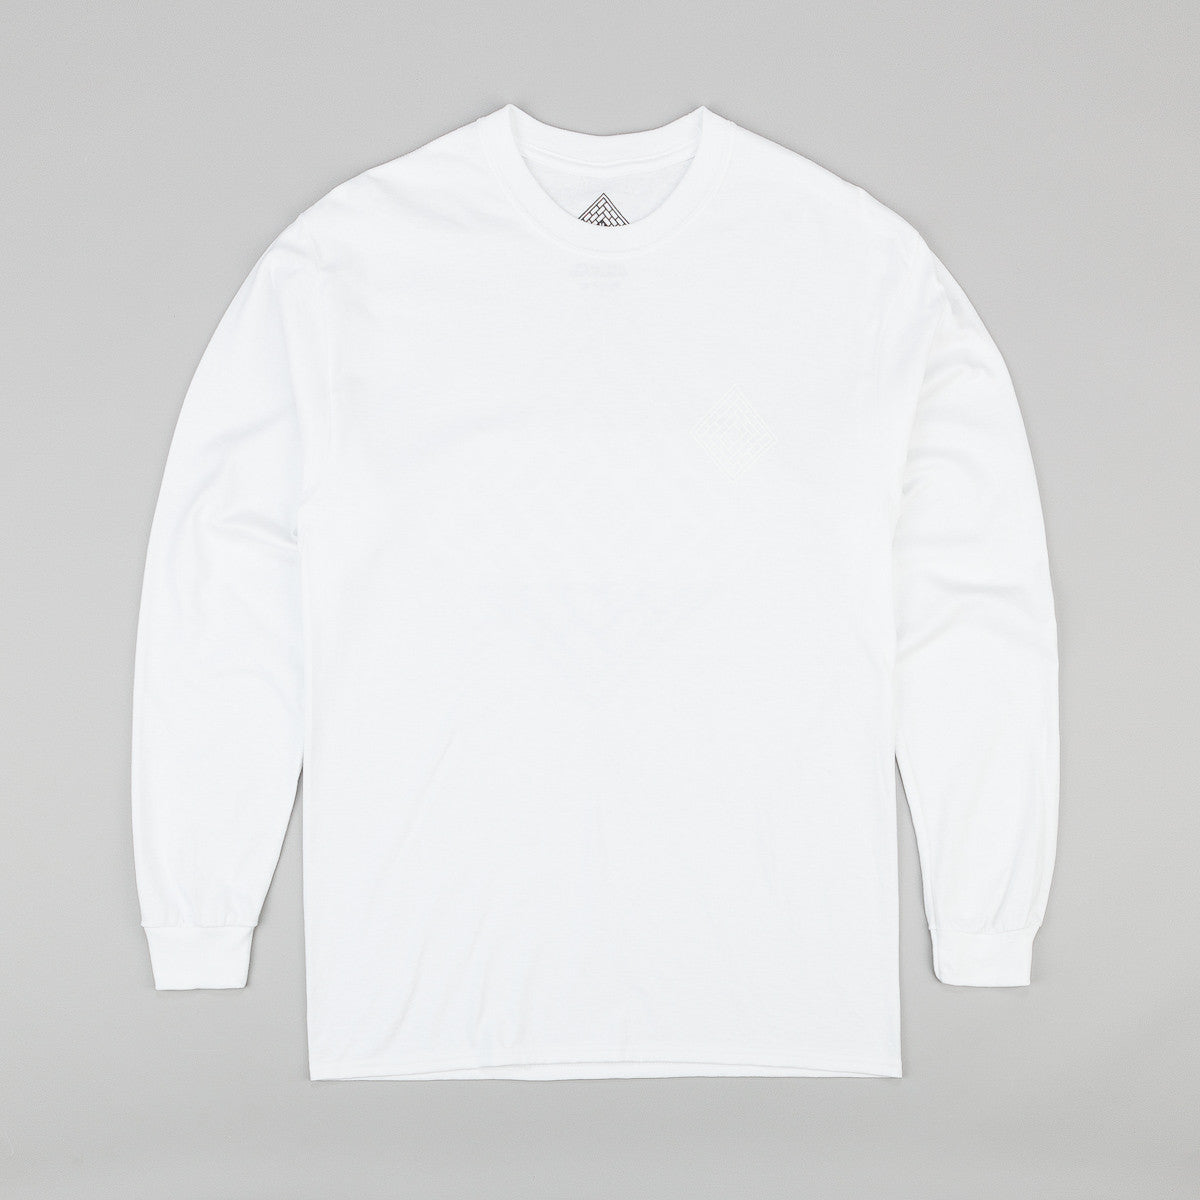 The National Skateboard Co Division Long Sleeve T-Shirt